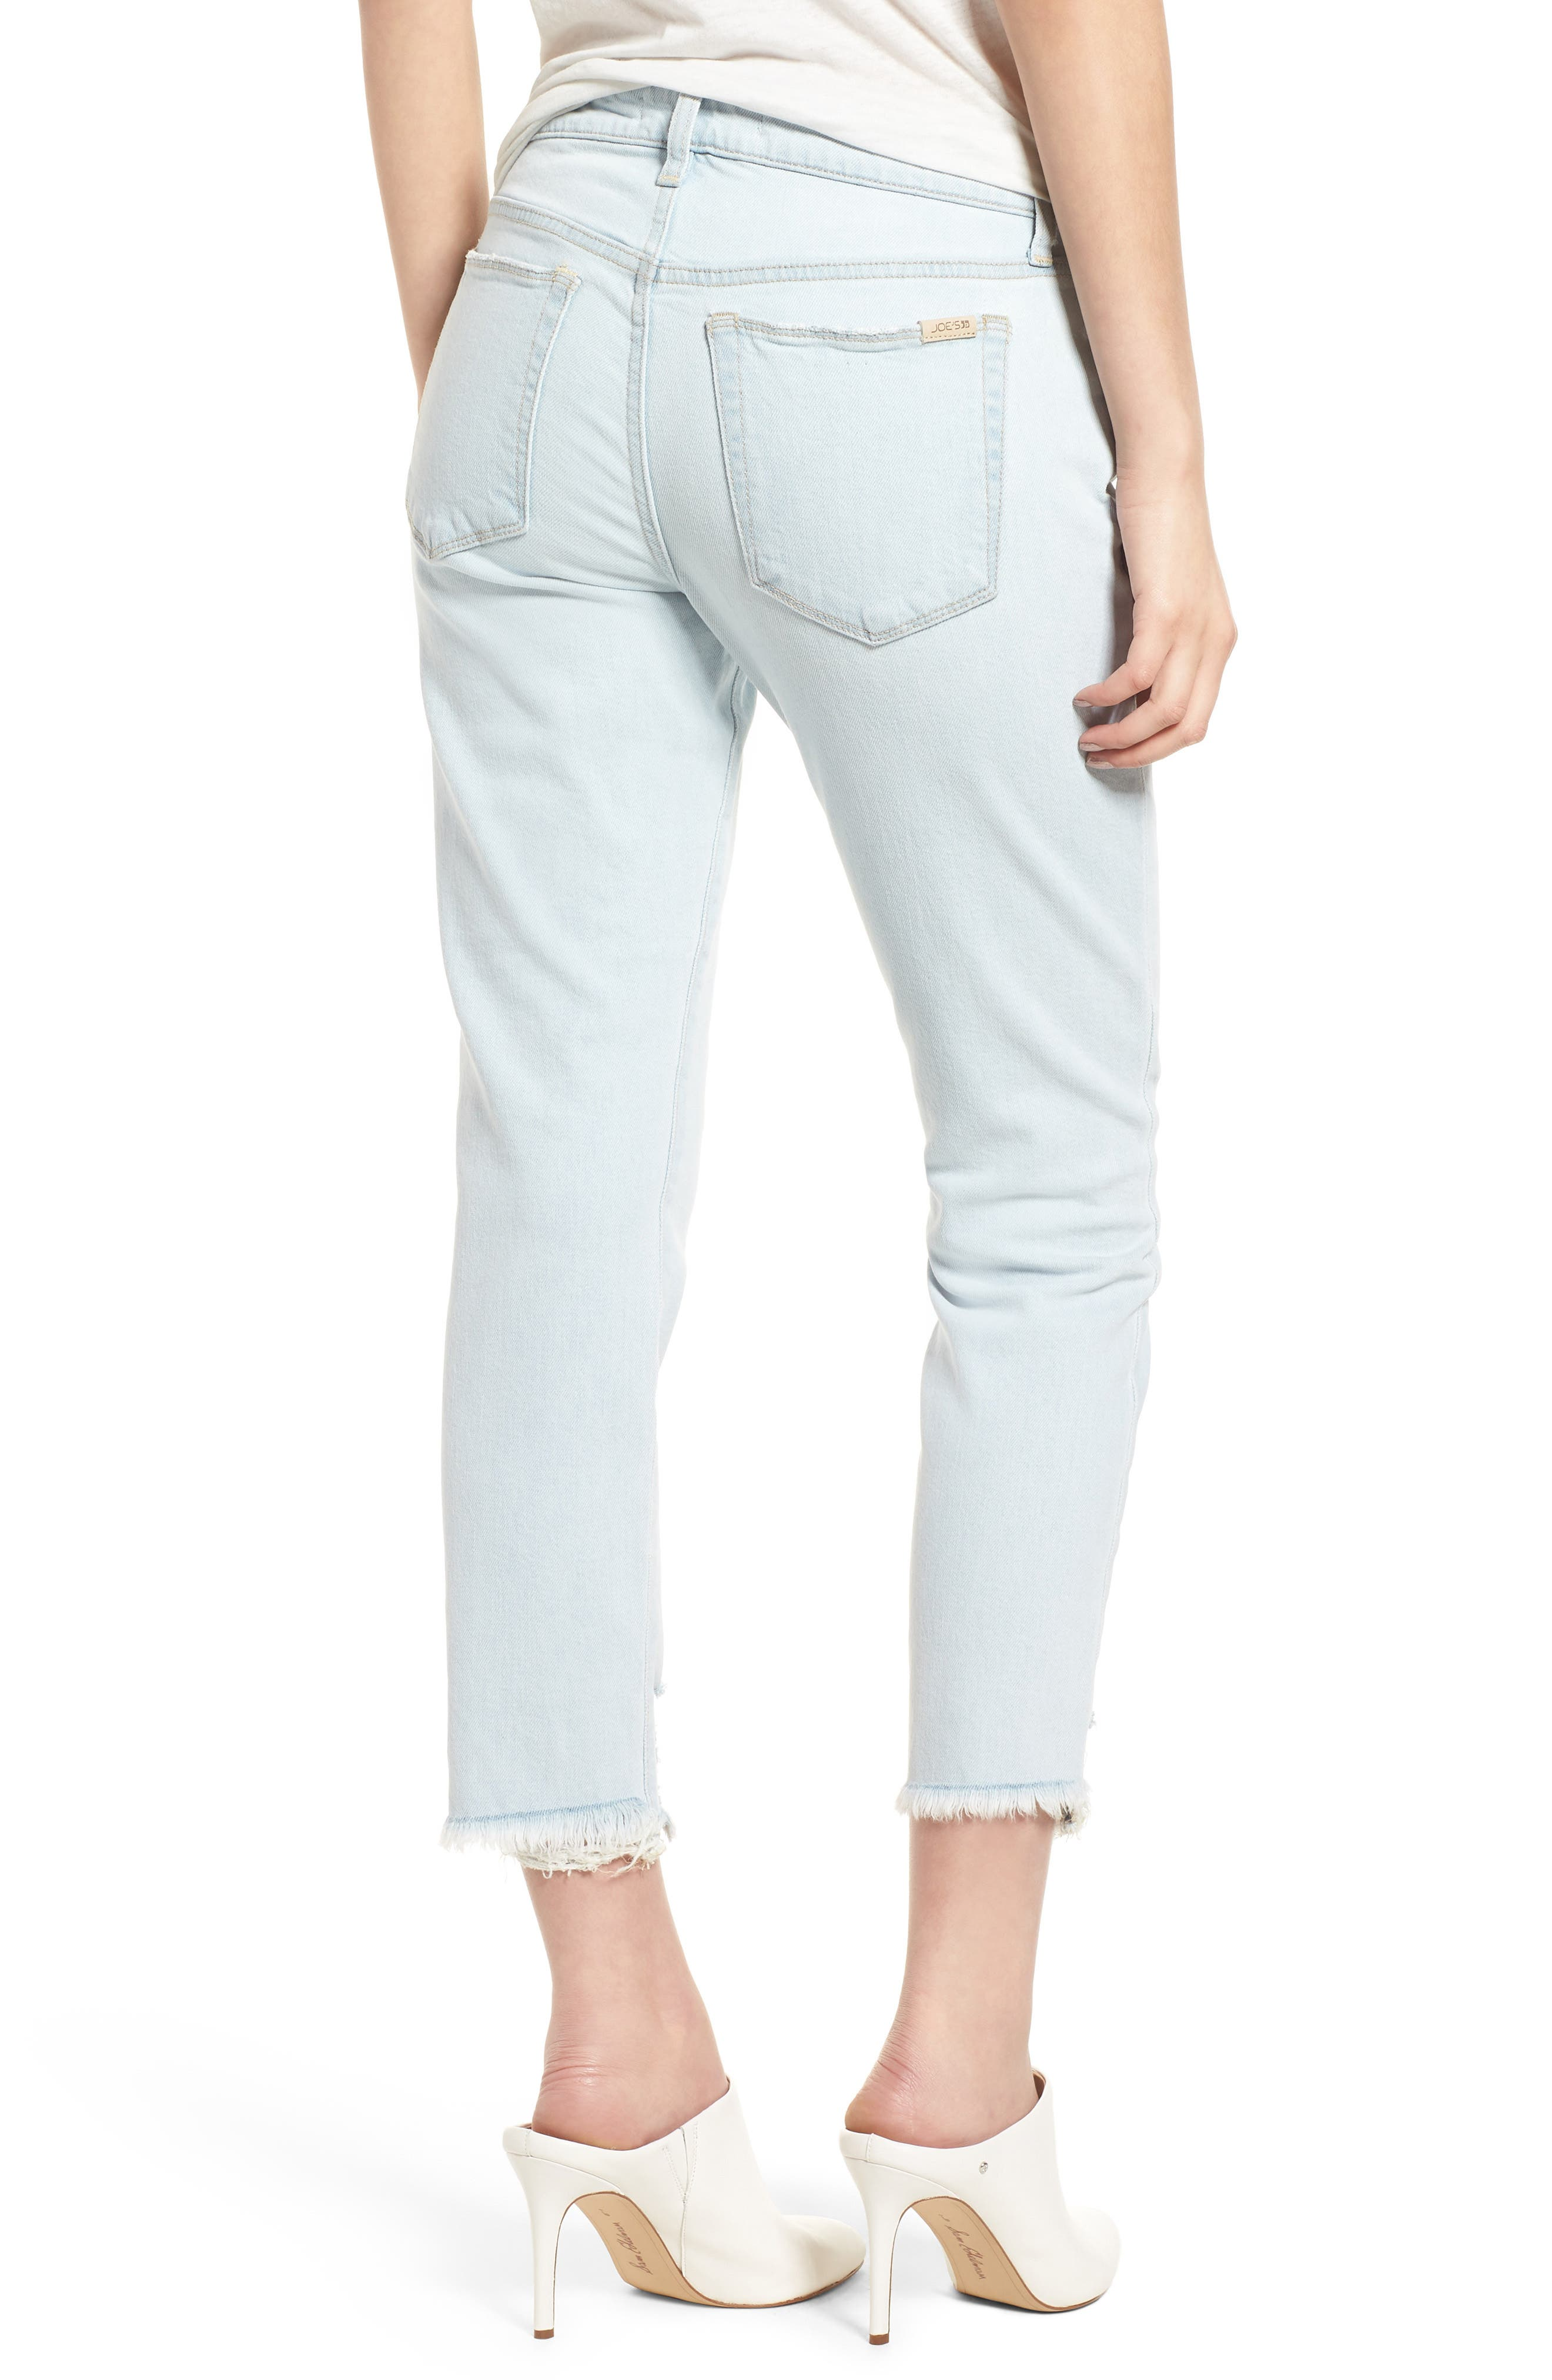 Smith Crop Boyfriend Jeans,                             Alternate thumbnail 3, color,                             Liya